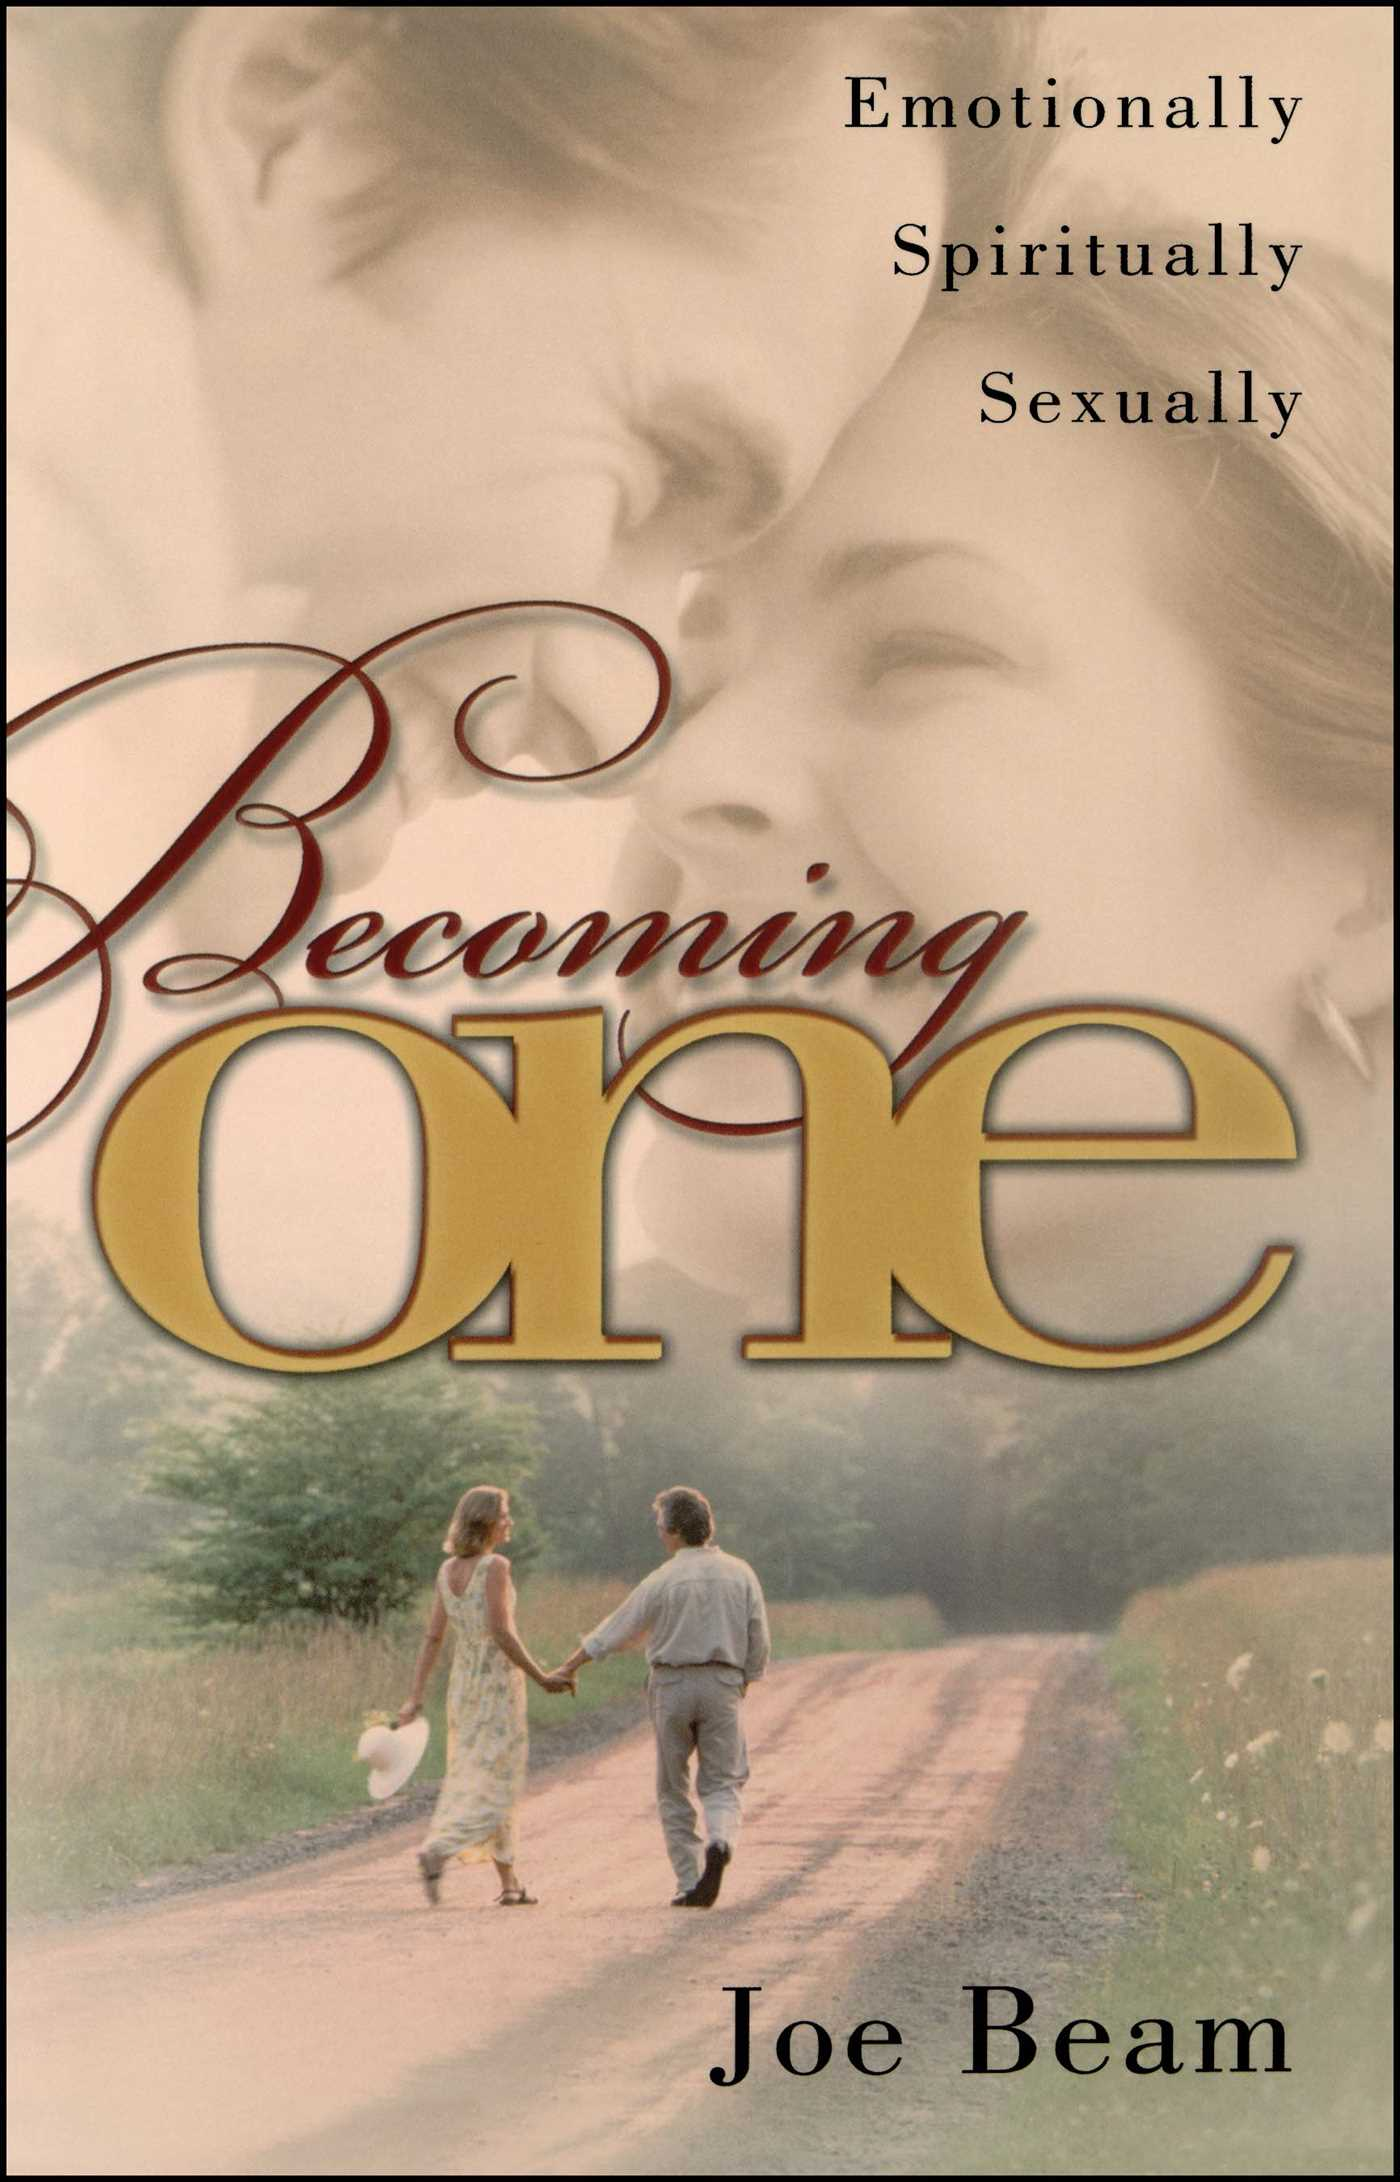 Becoming-one-9781582293622_hr